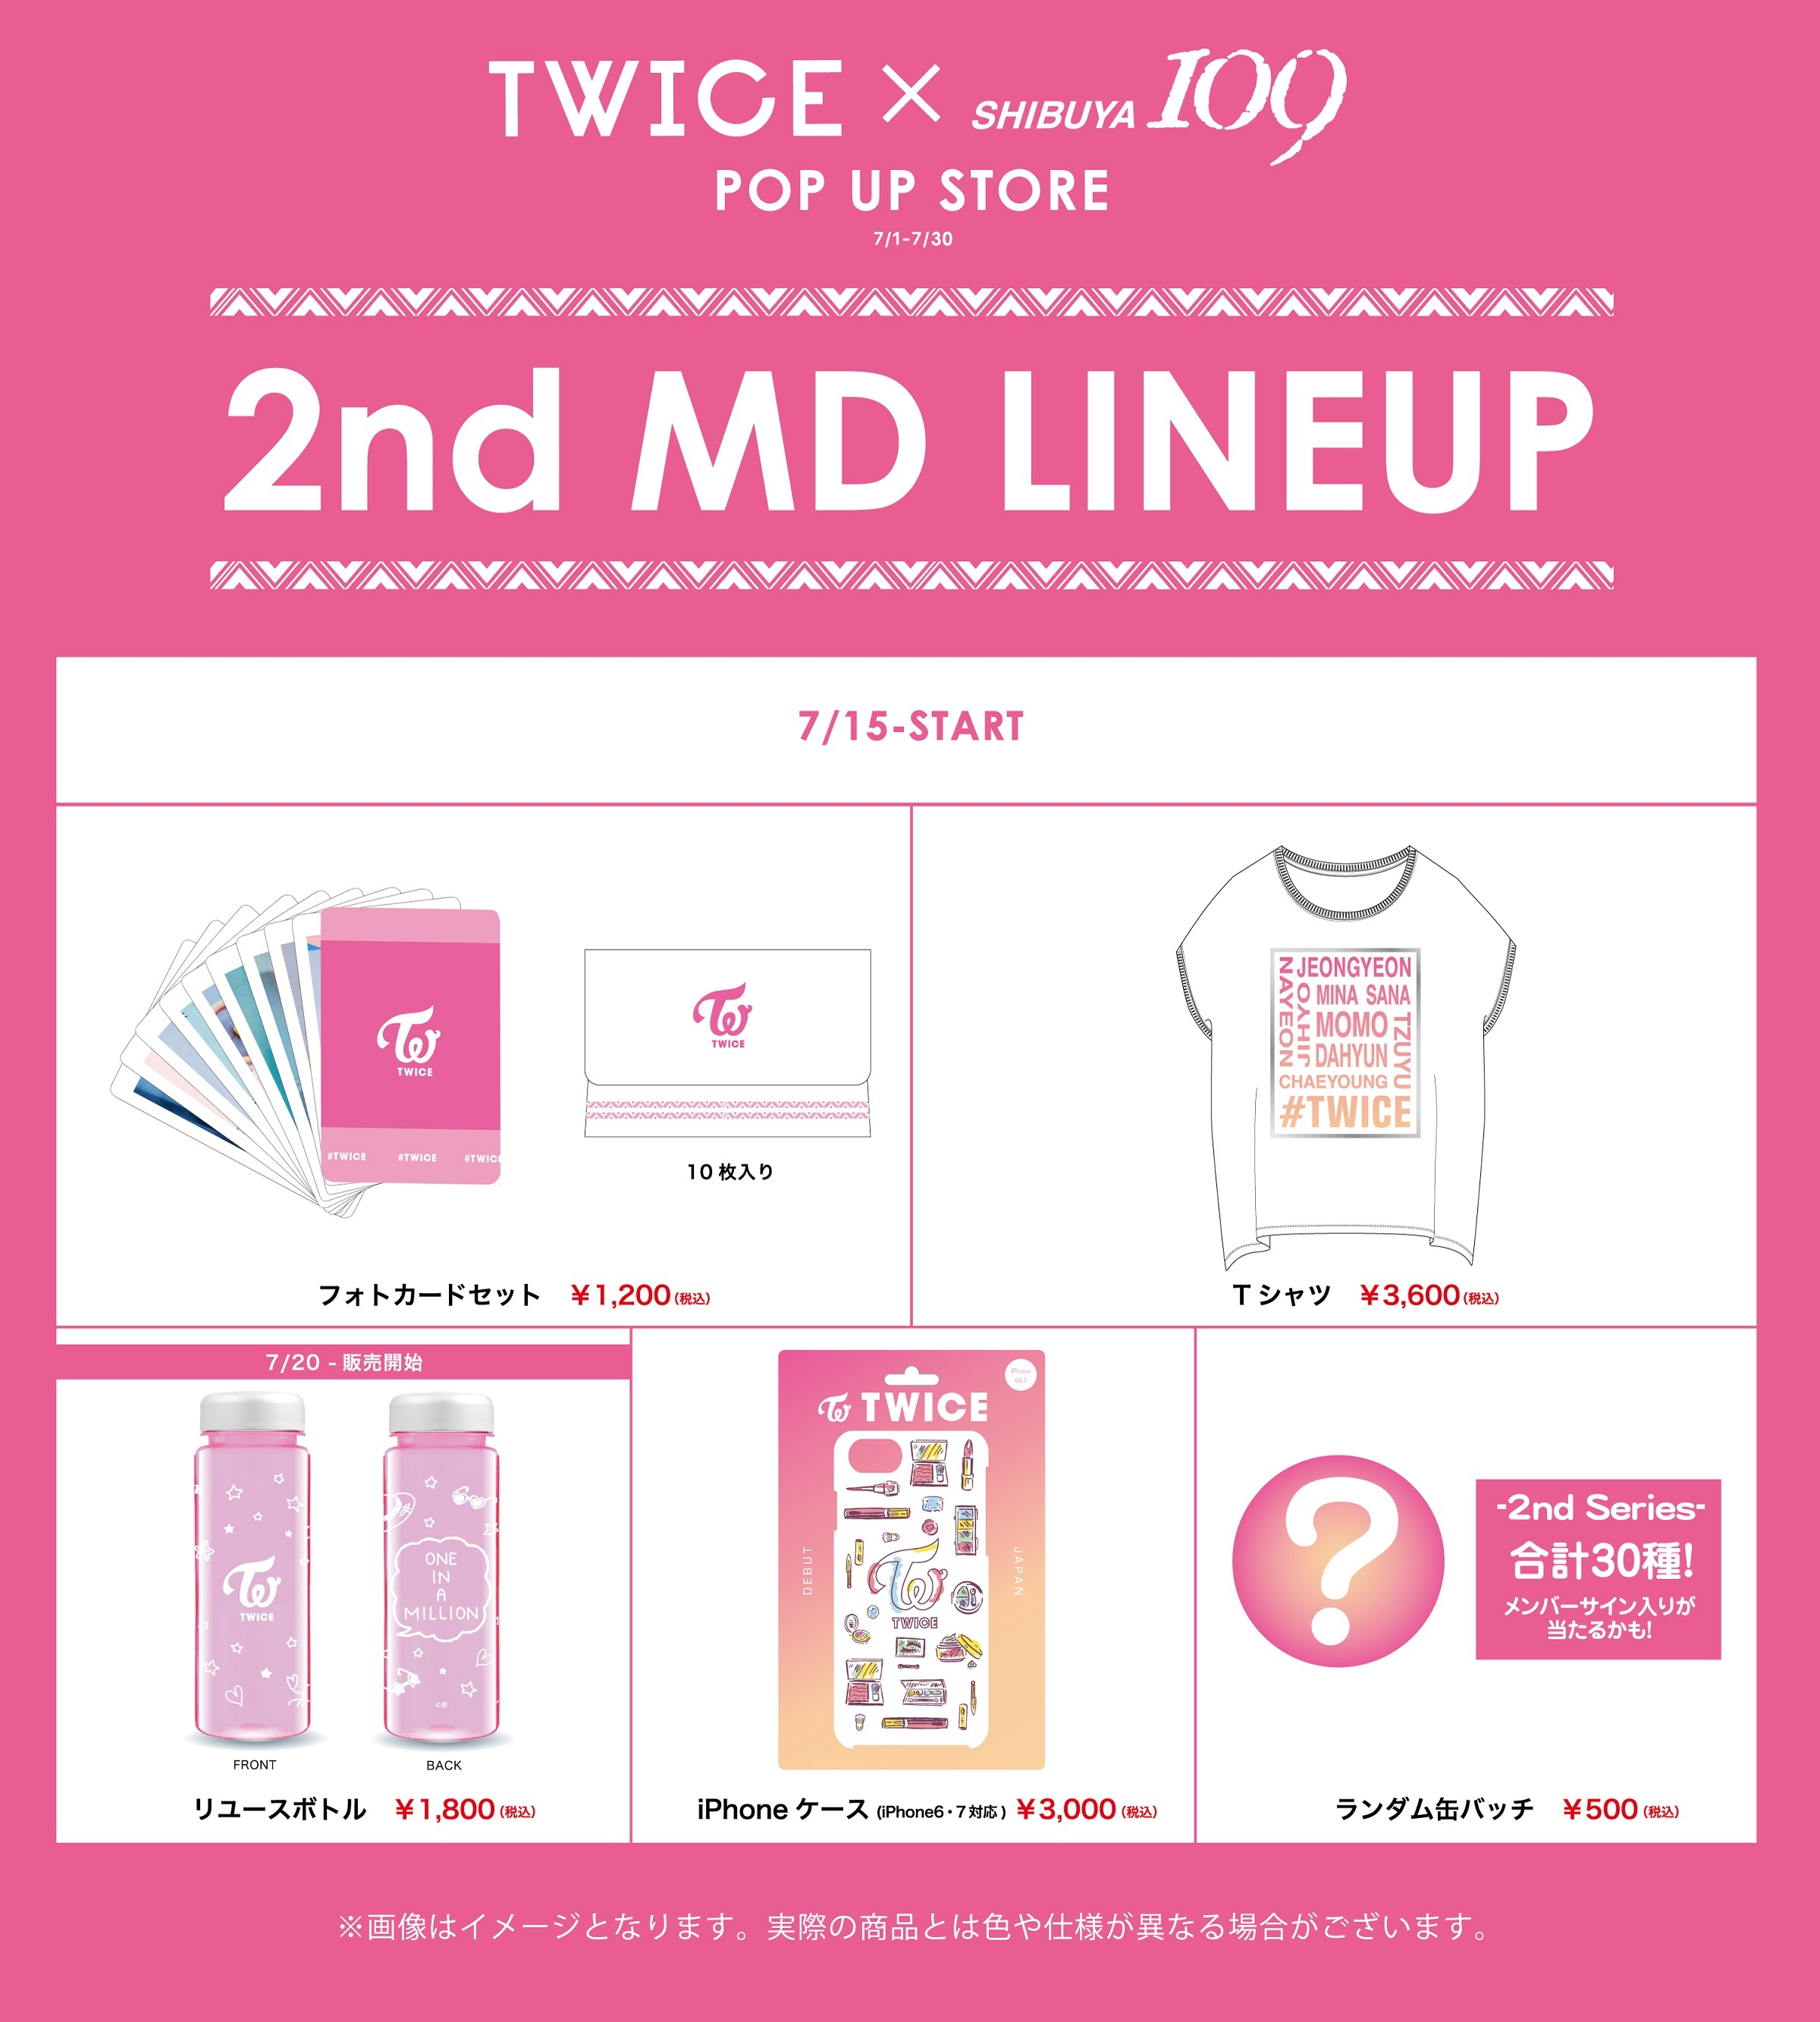 『#TWICE POP UP STORE』